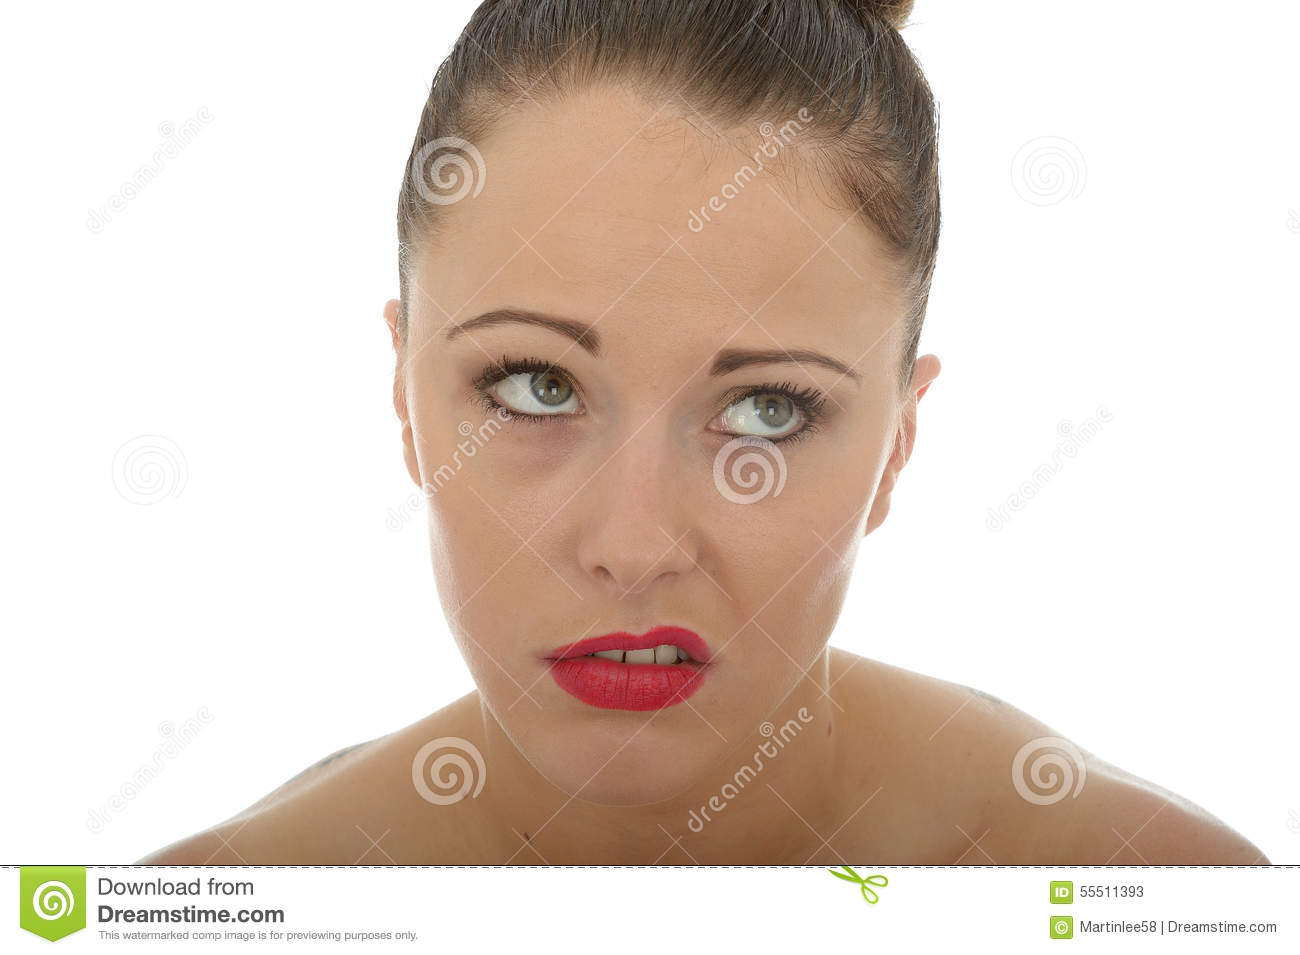 Attractive Young Woman Looking Very Fed Up Miserable and Bored